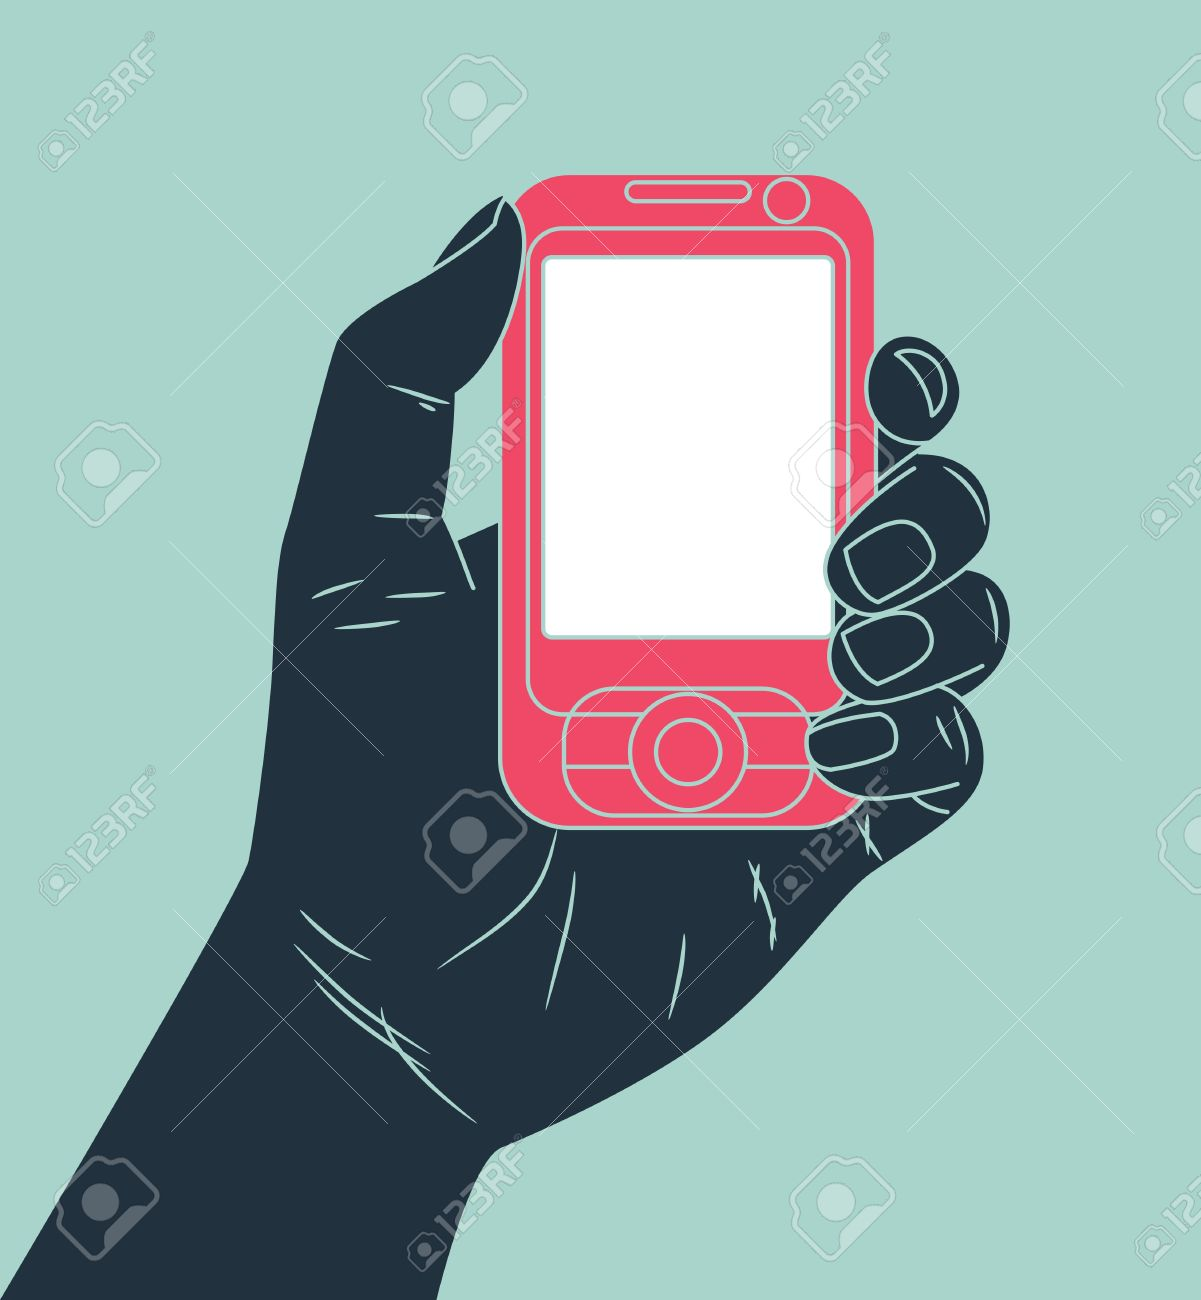 hand holding cell phone - 15567884